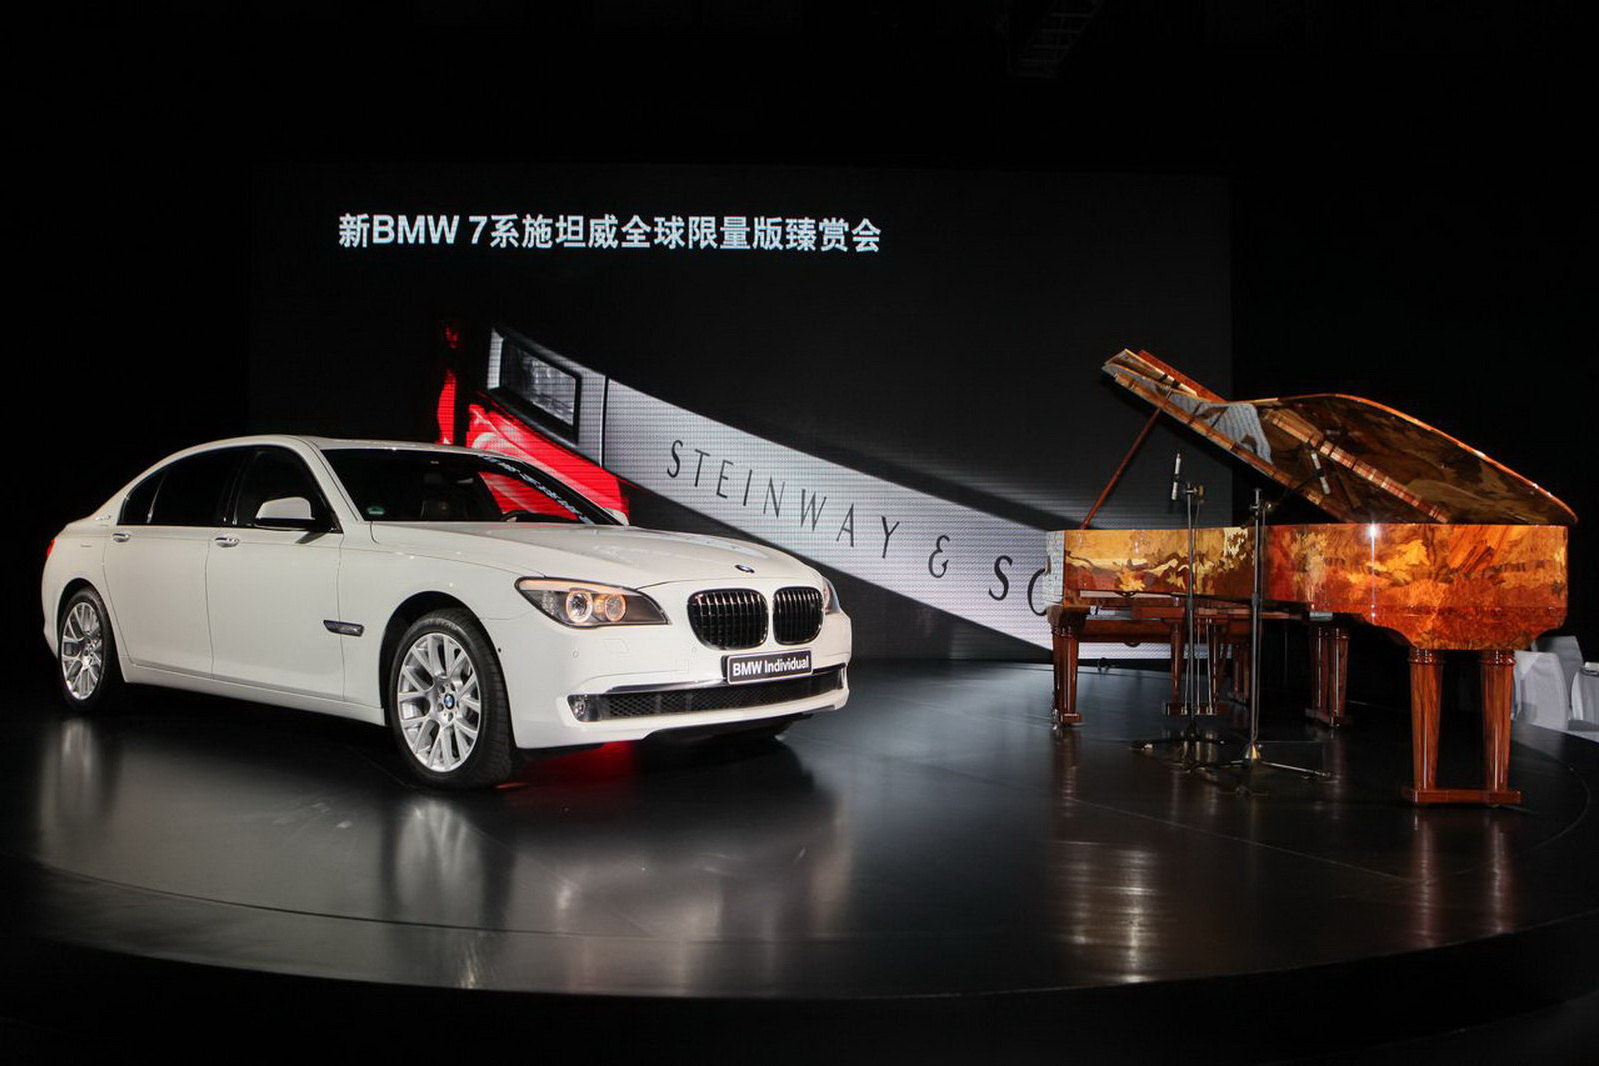 New BMW 7 Series to Be Launched in China Soon | machinespider.